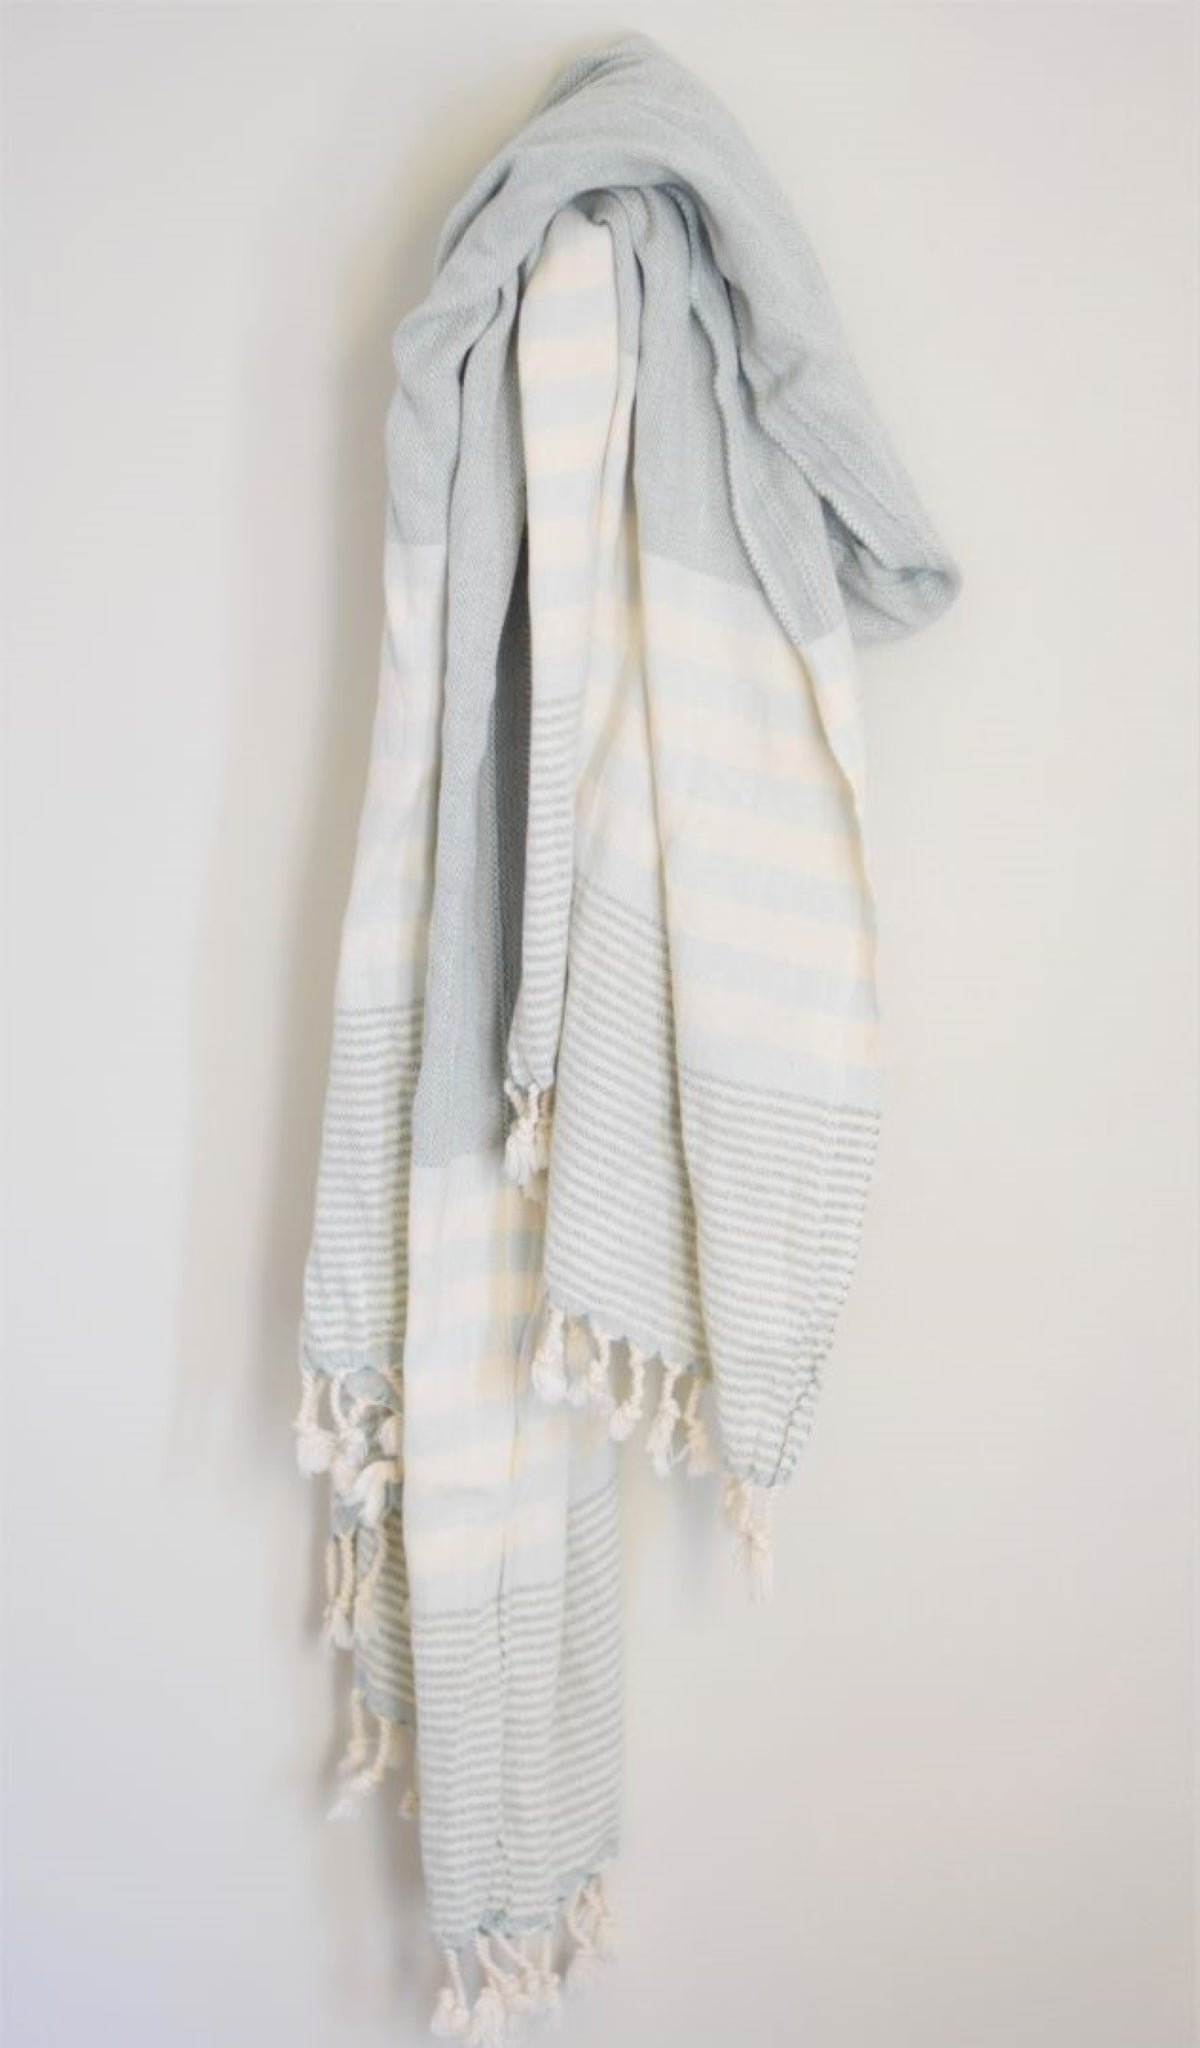 the 'hamam' towel in breeze